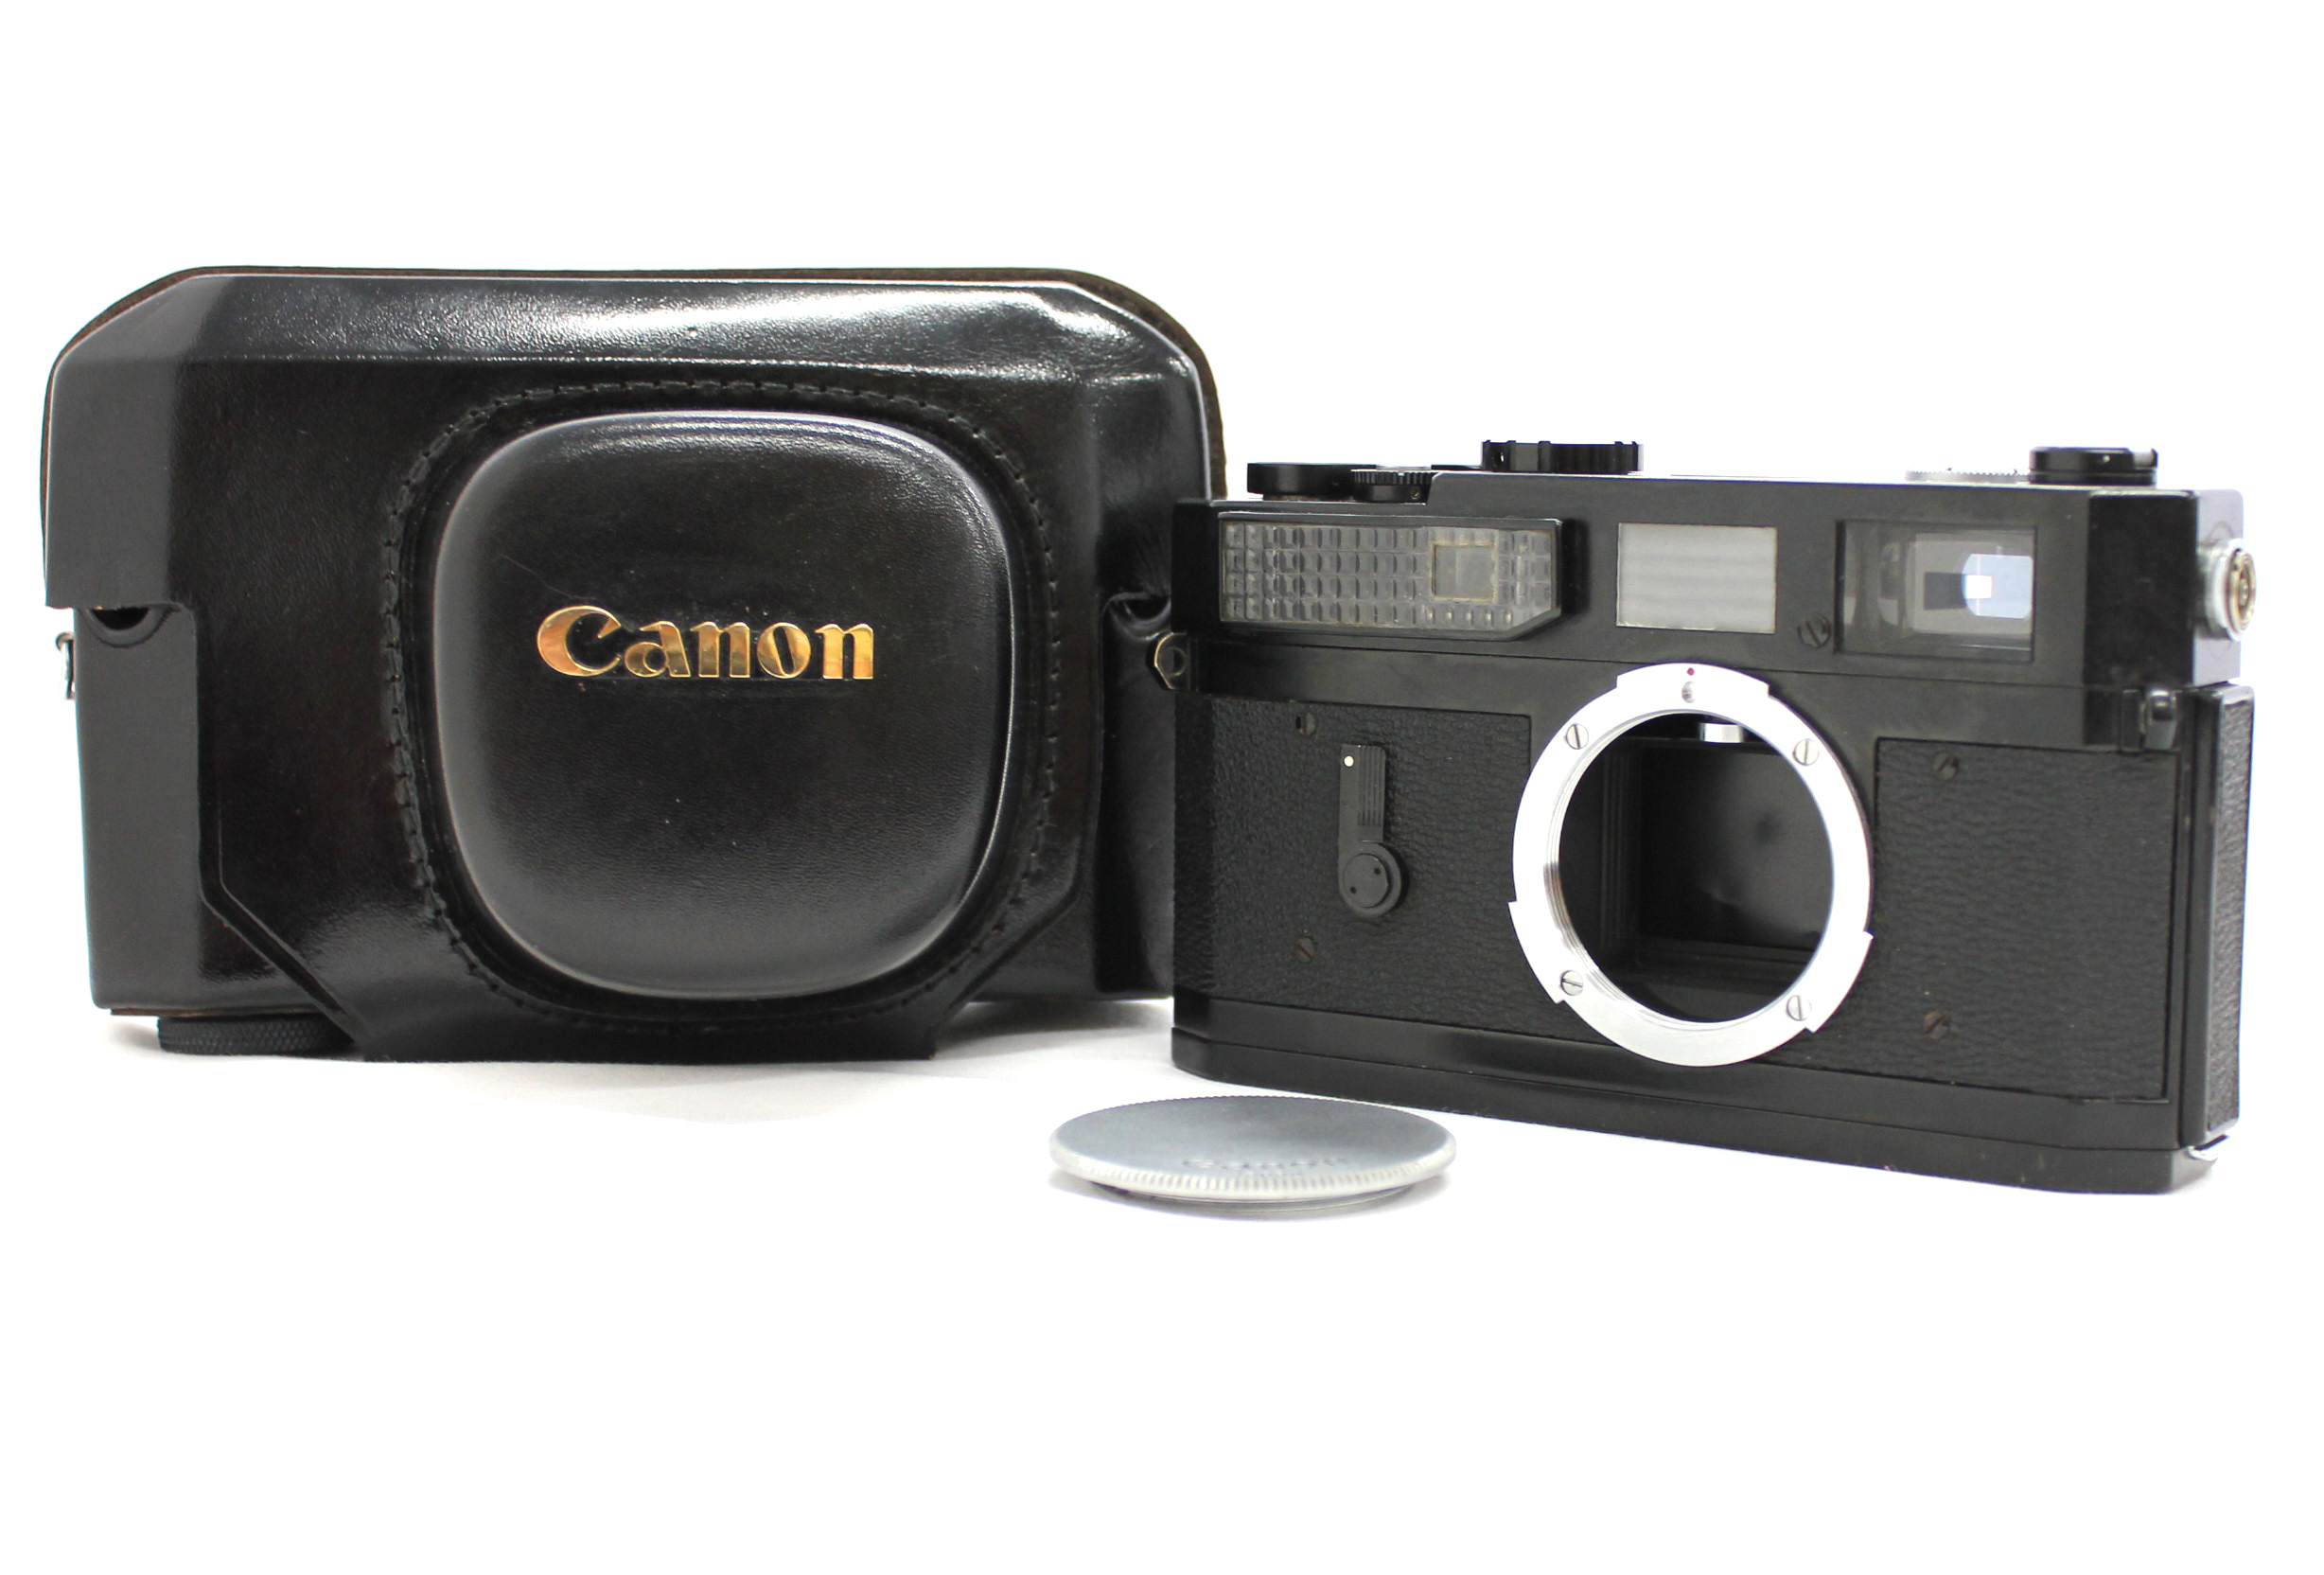 Japan Used Camera Shop | [Excellent++] Canon Model 7 Original Black Paint Rangefinder Film Camera from Japan